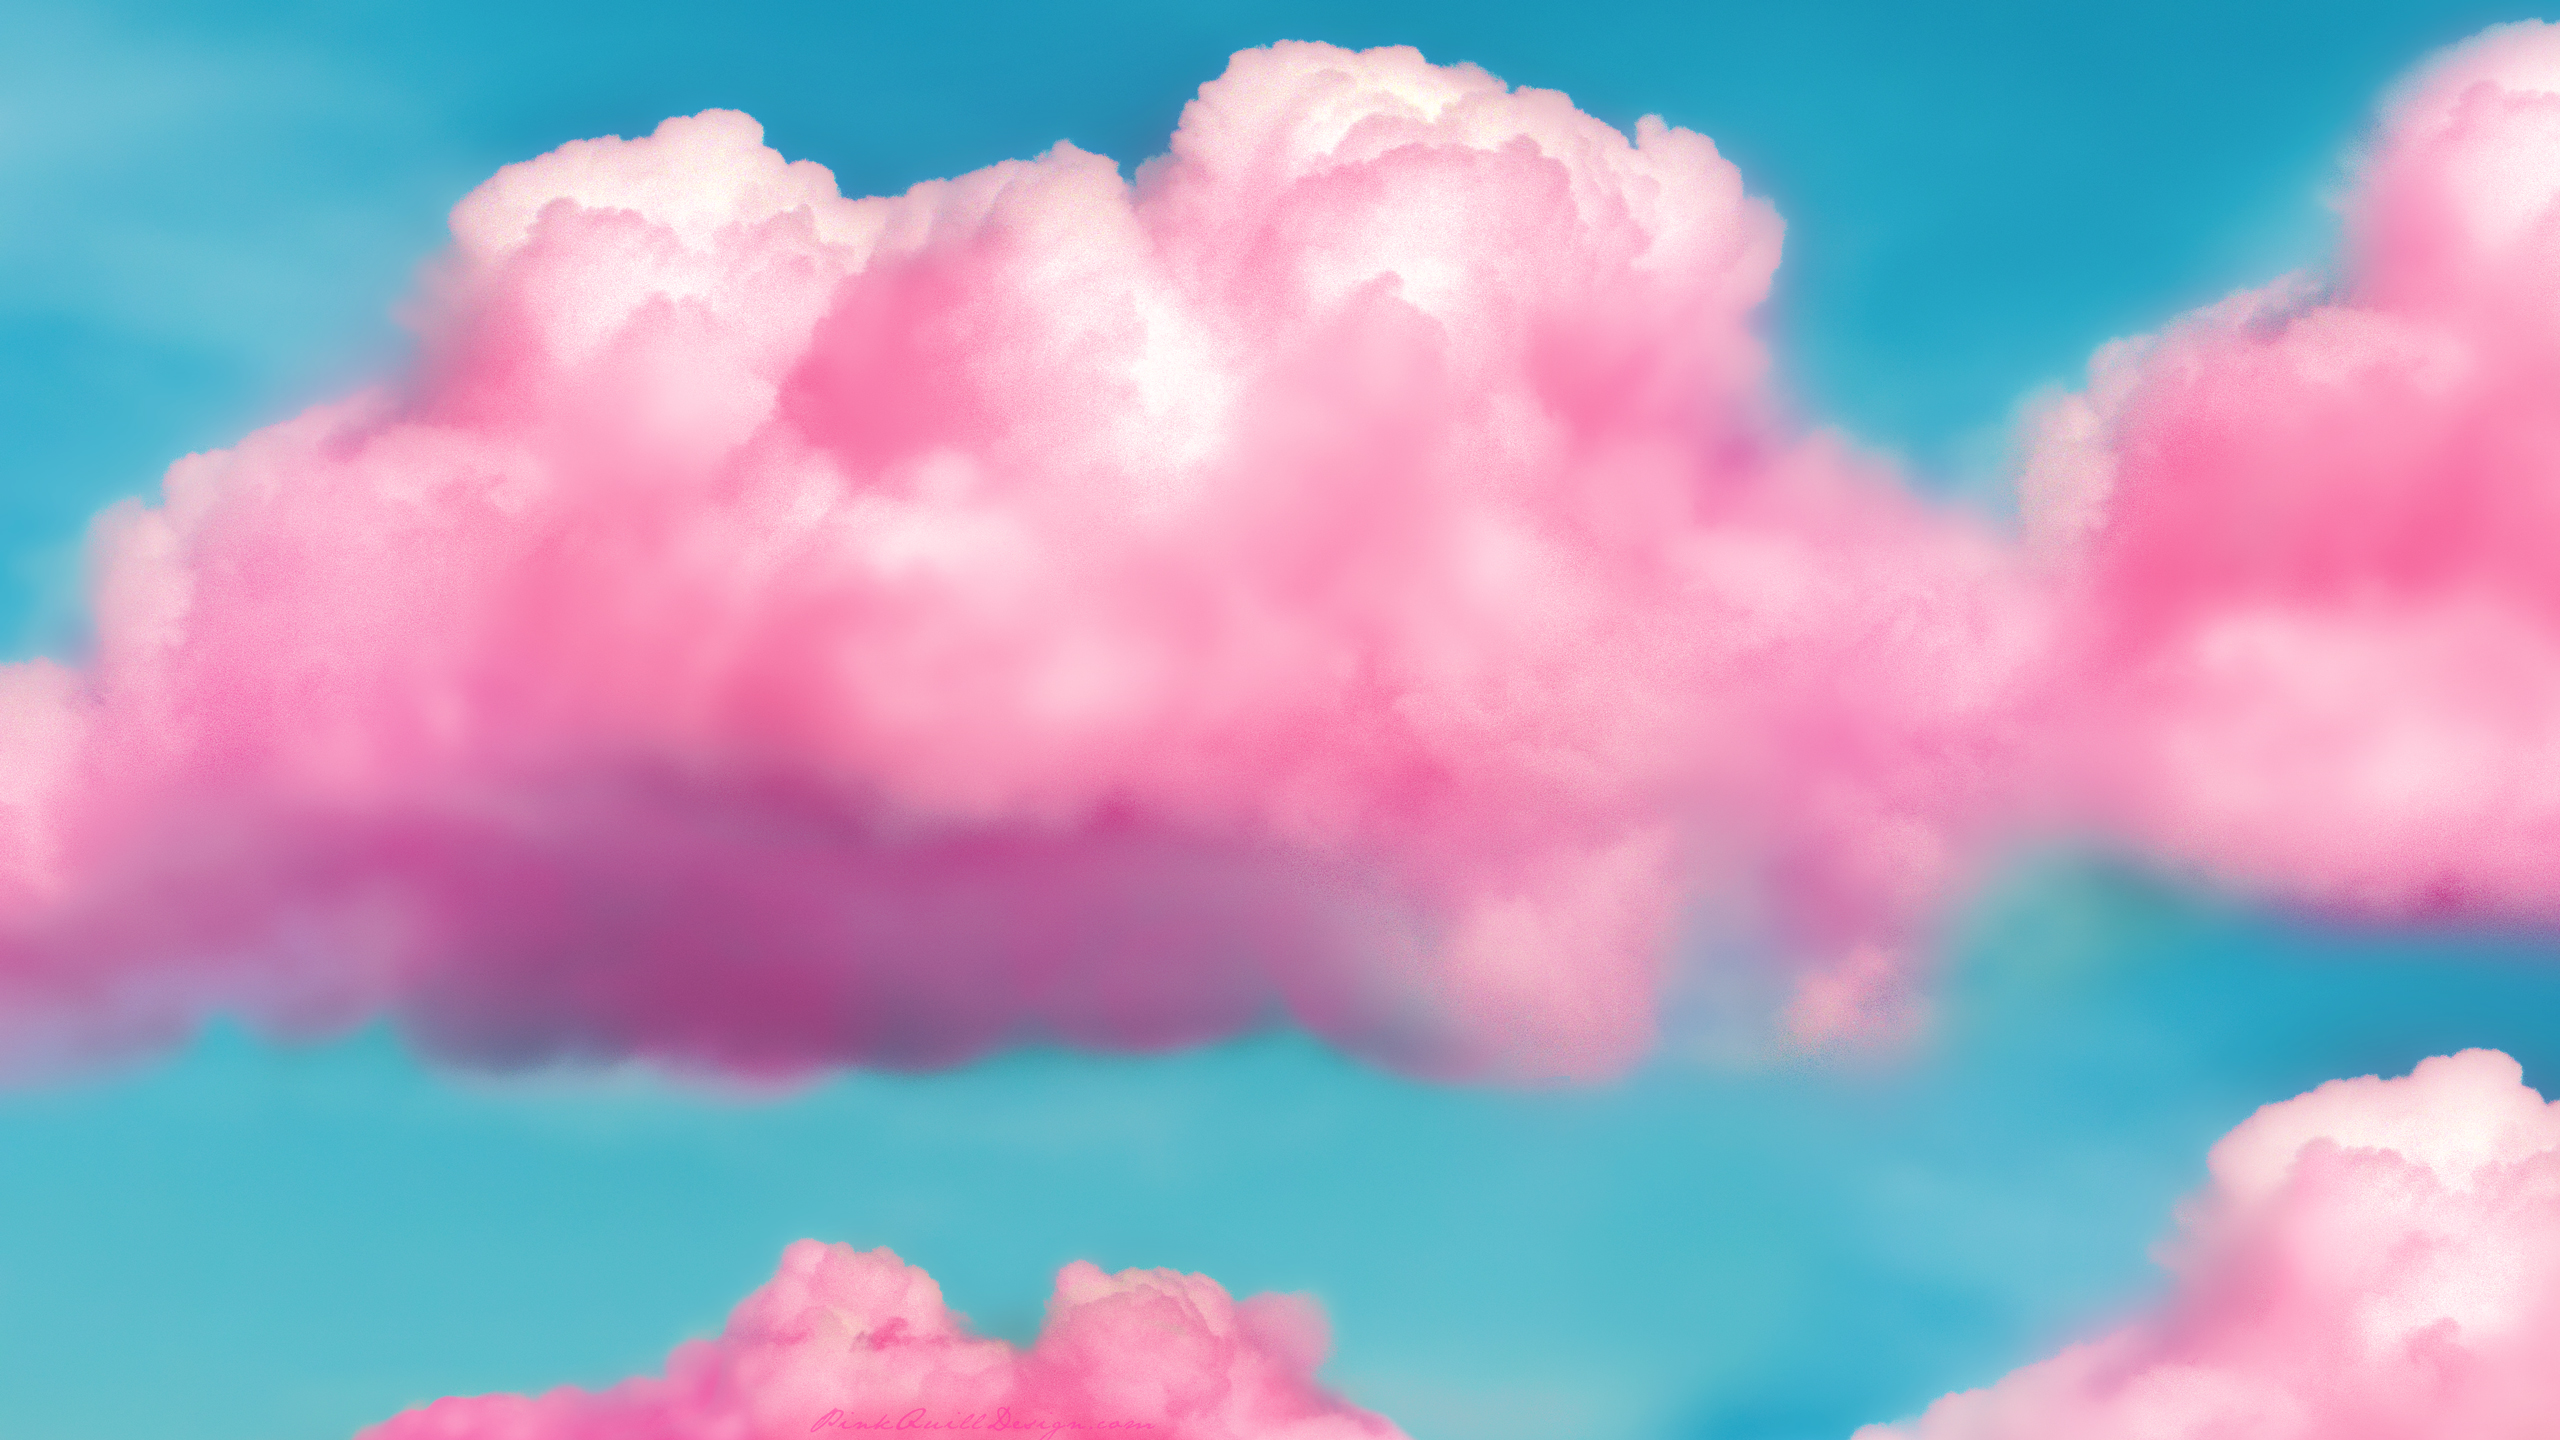 Pink Fluffy Clouds HD Wallpaper by pinkquilldesign 2560x1440